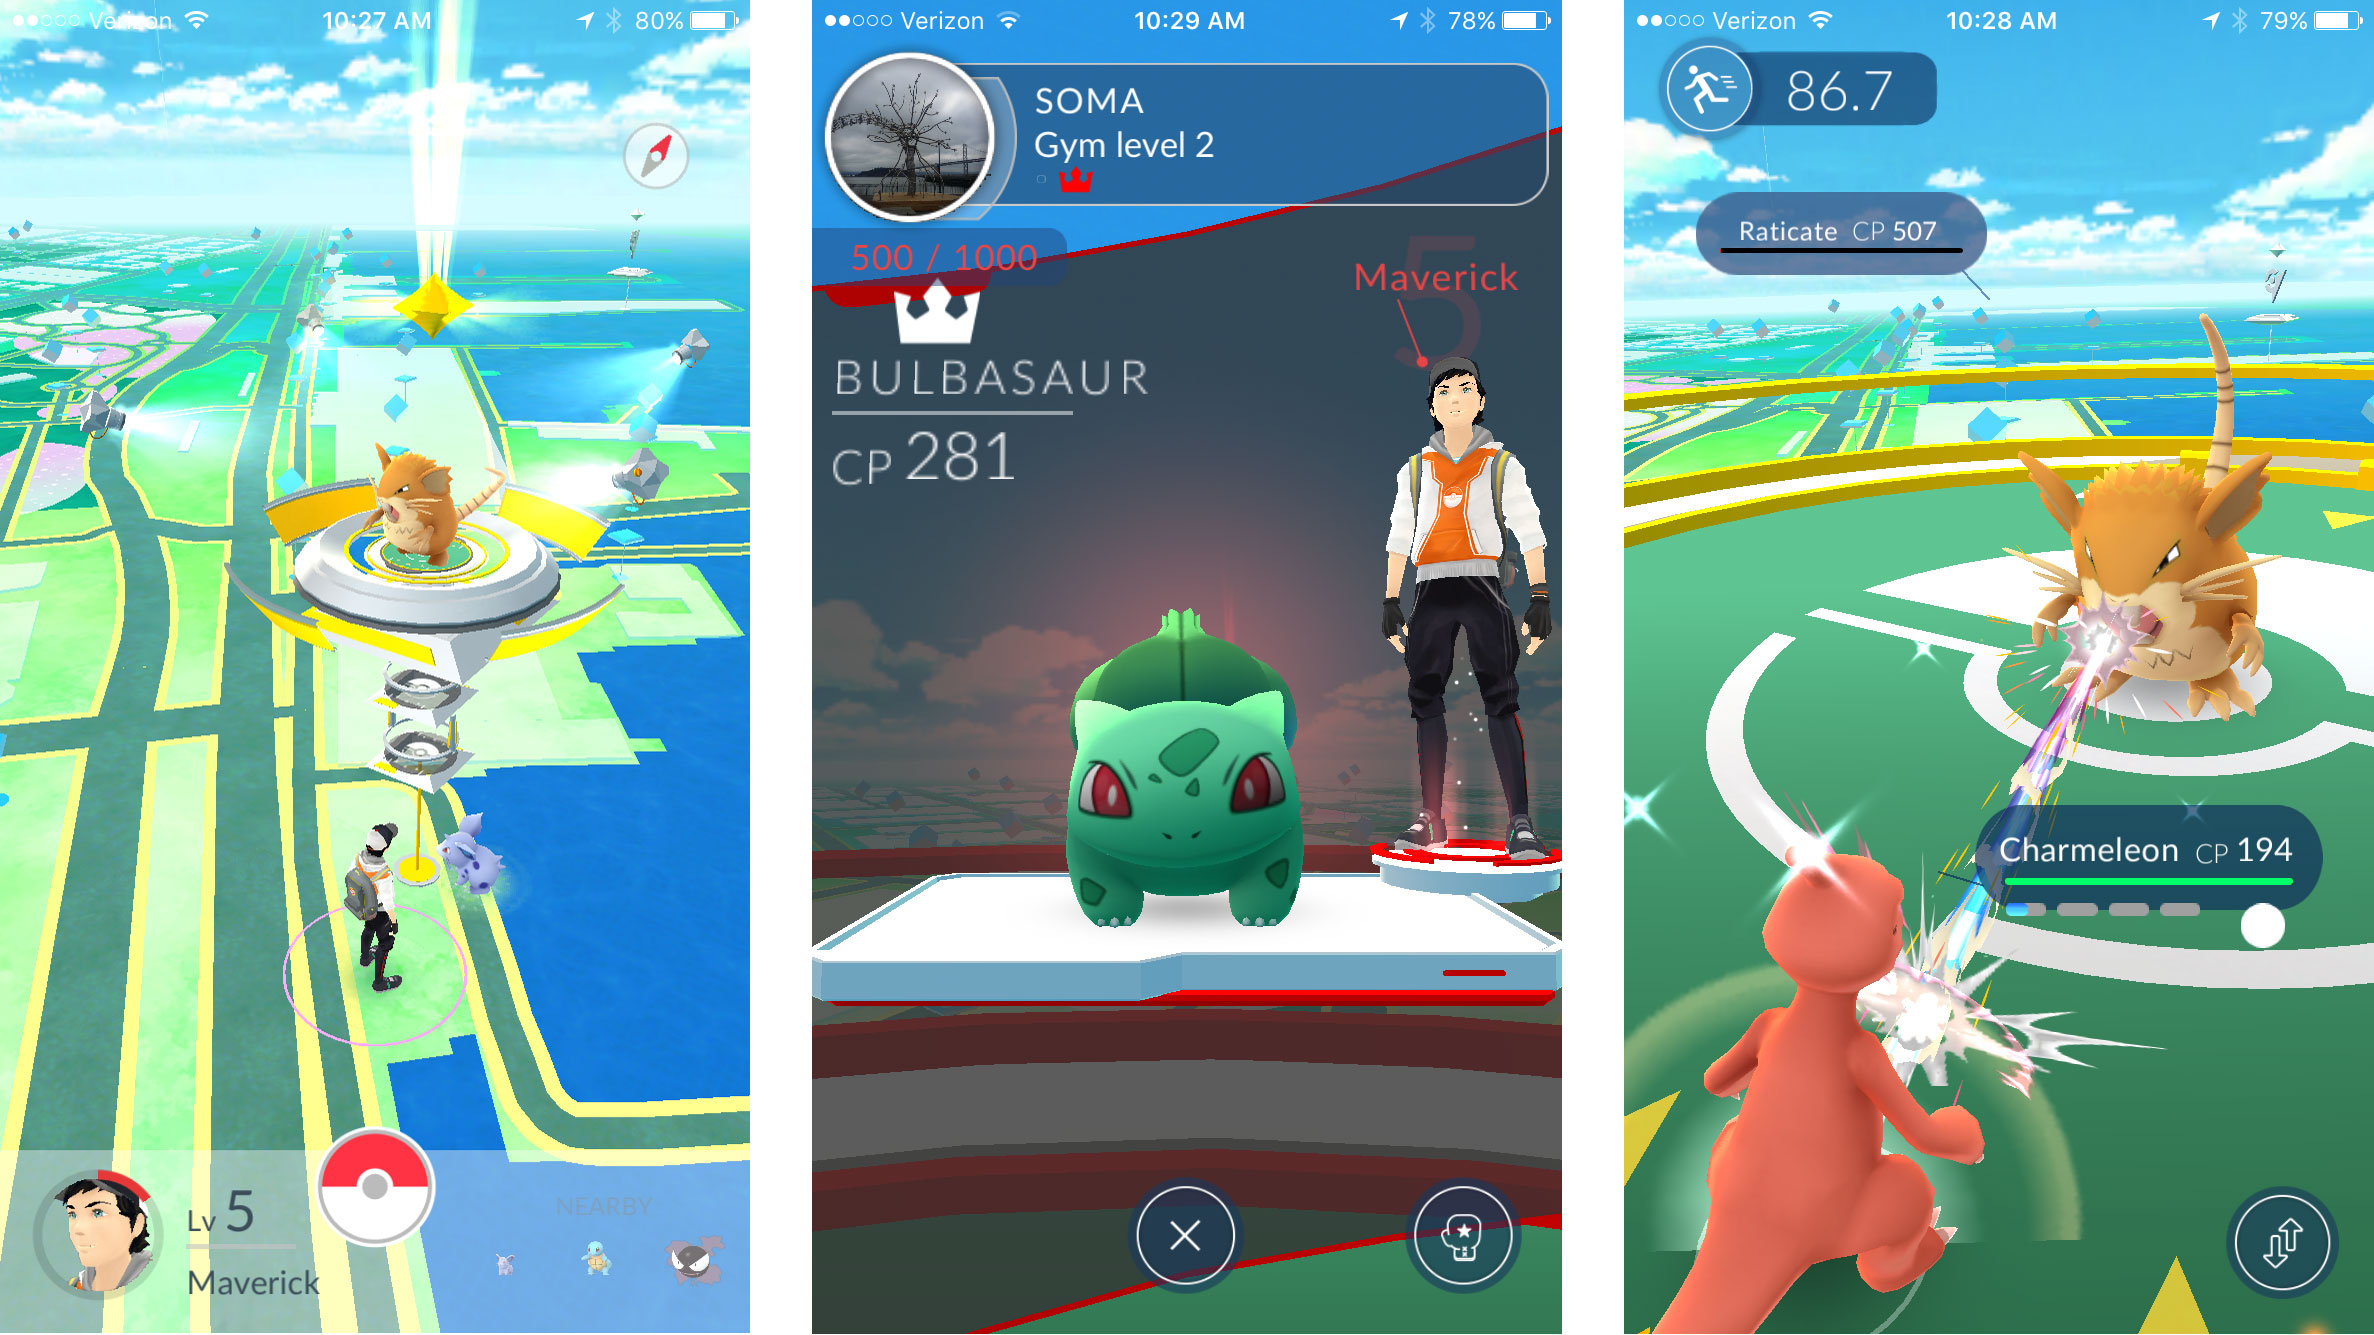 pokemon go gym battle has already been completed